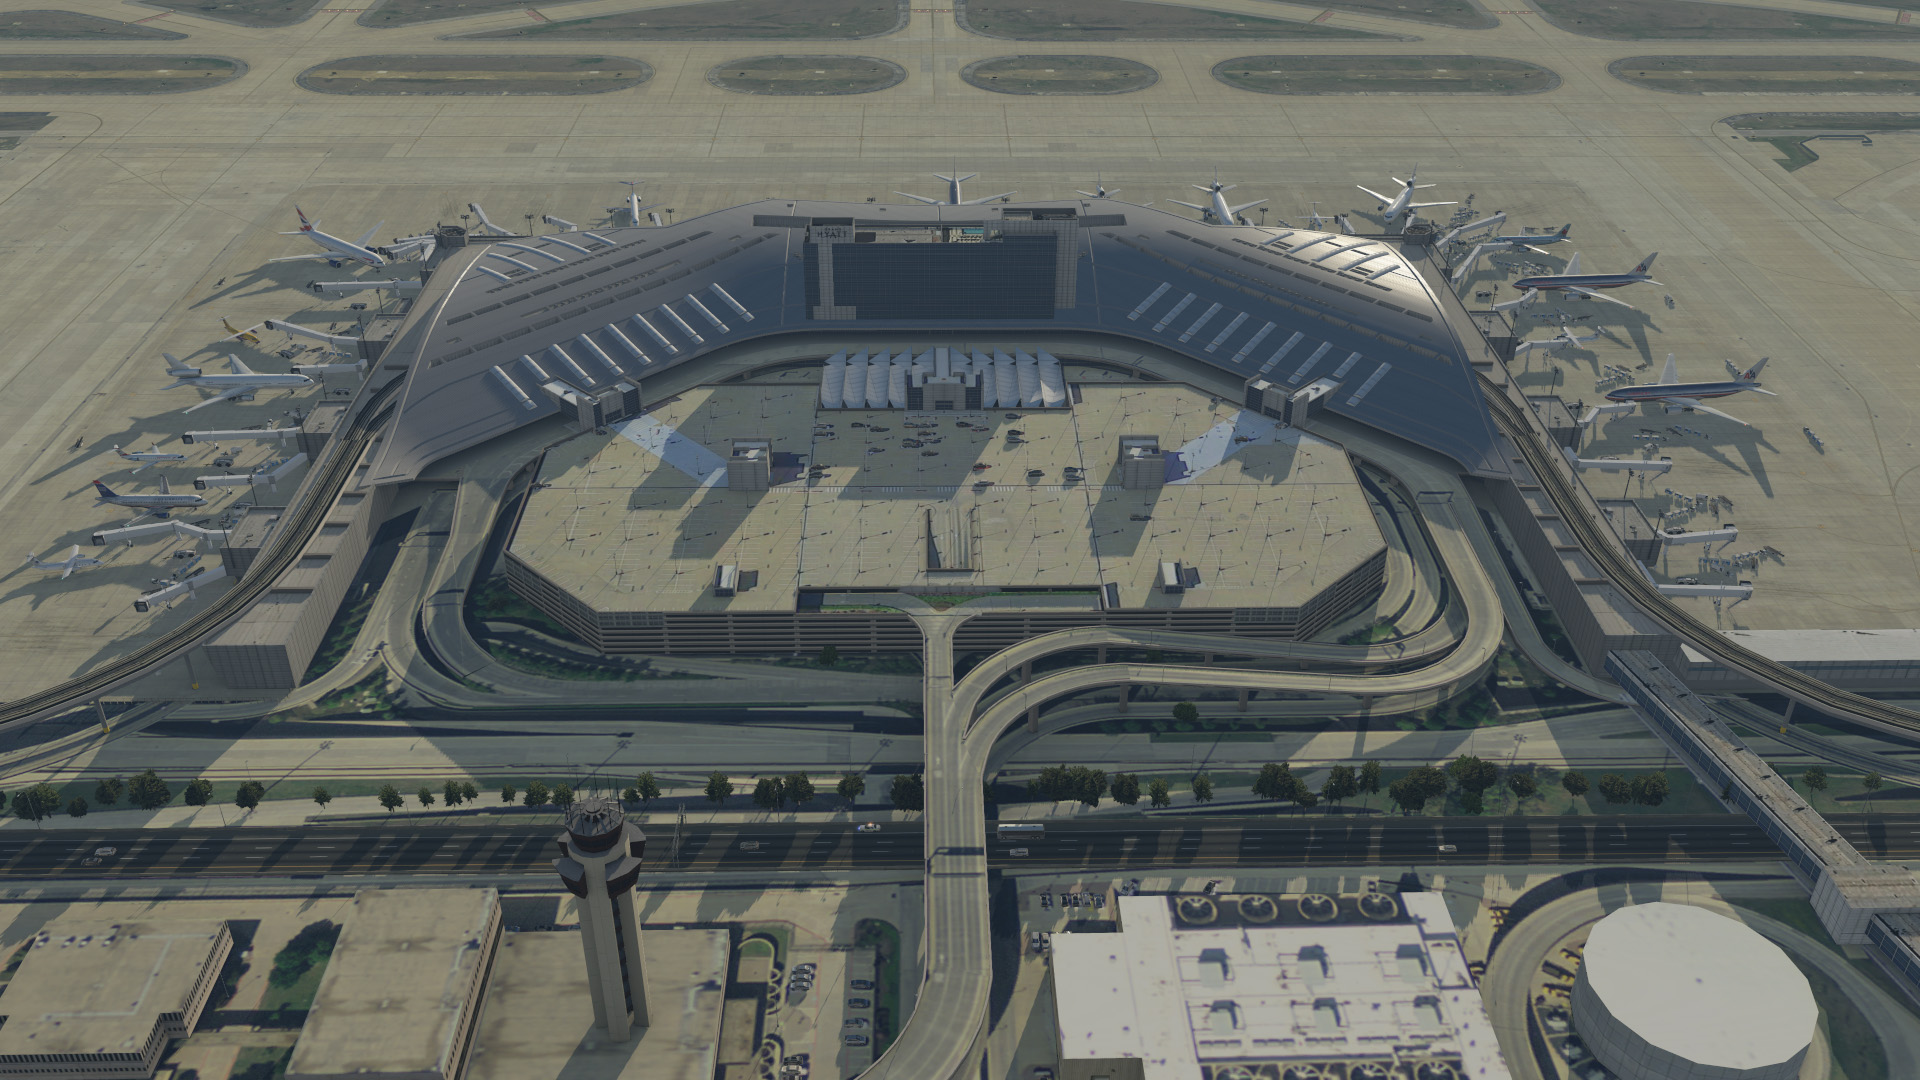 Available Now] Aerosoft Dallas/Fort Worth Intl for XP 10 & 11 - The